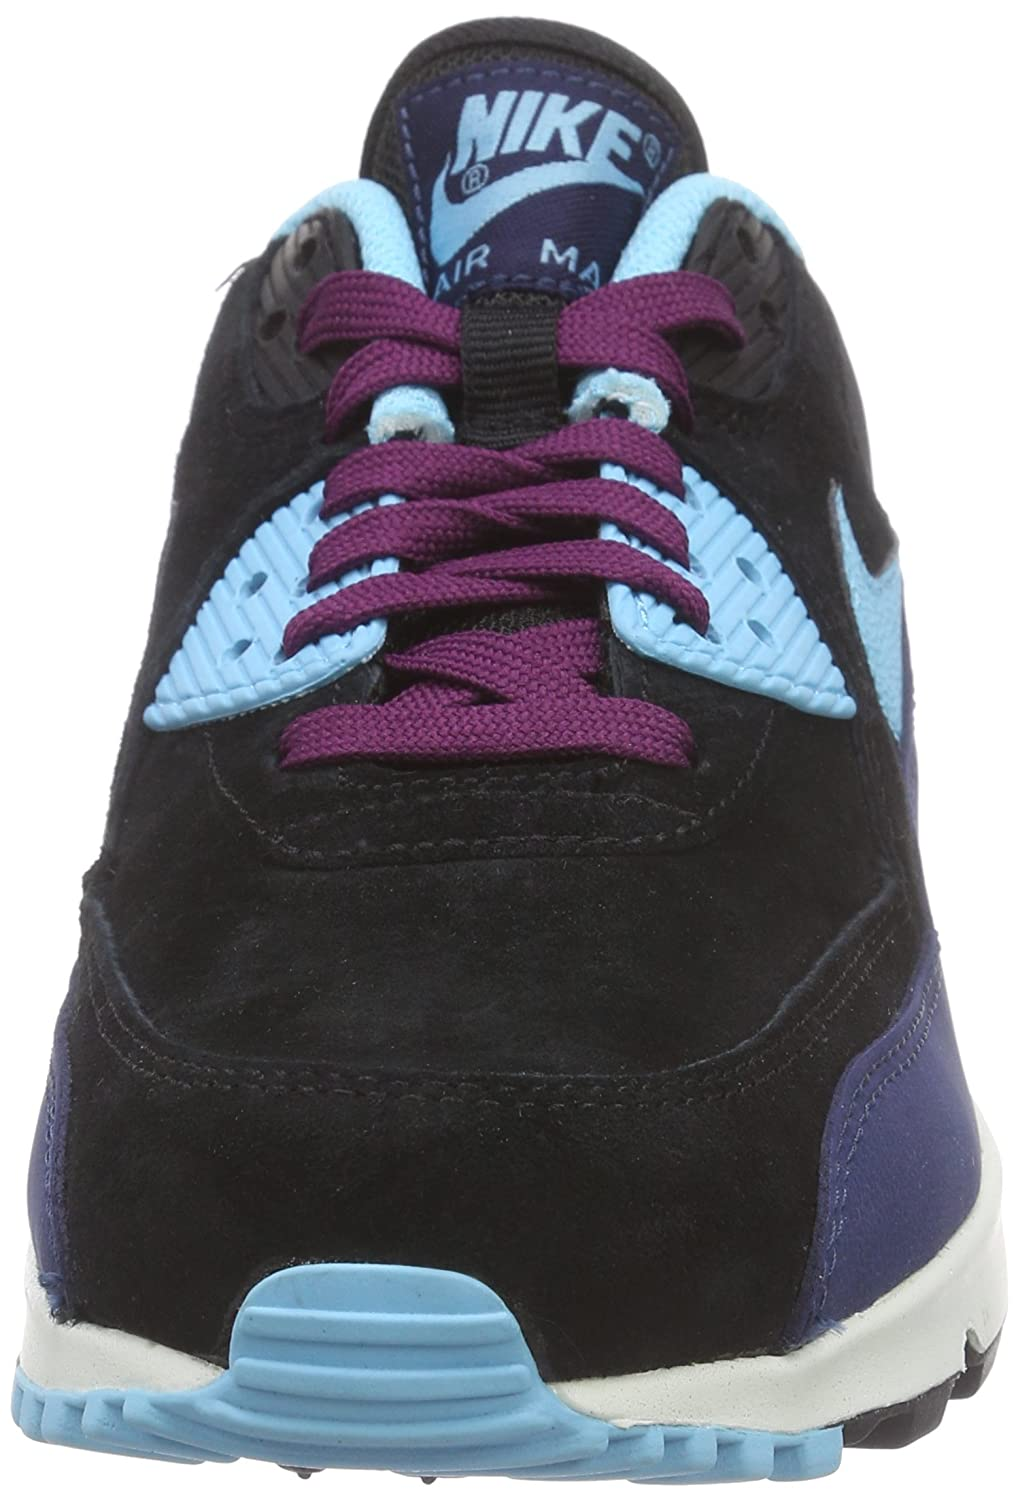 7b190f12ab Nike Air Max 90 Leather, Women's Low-Top Sneakers: Amazon.co.uk: Shoes &  Bags